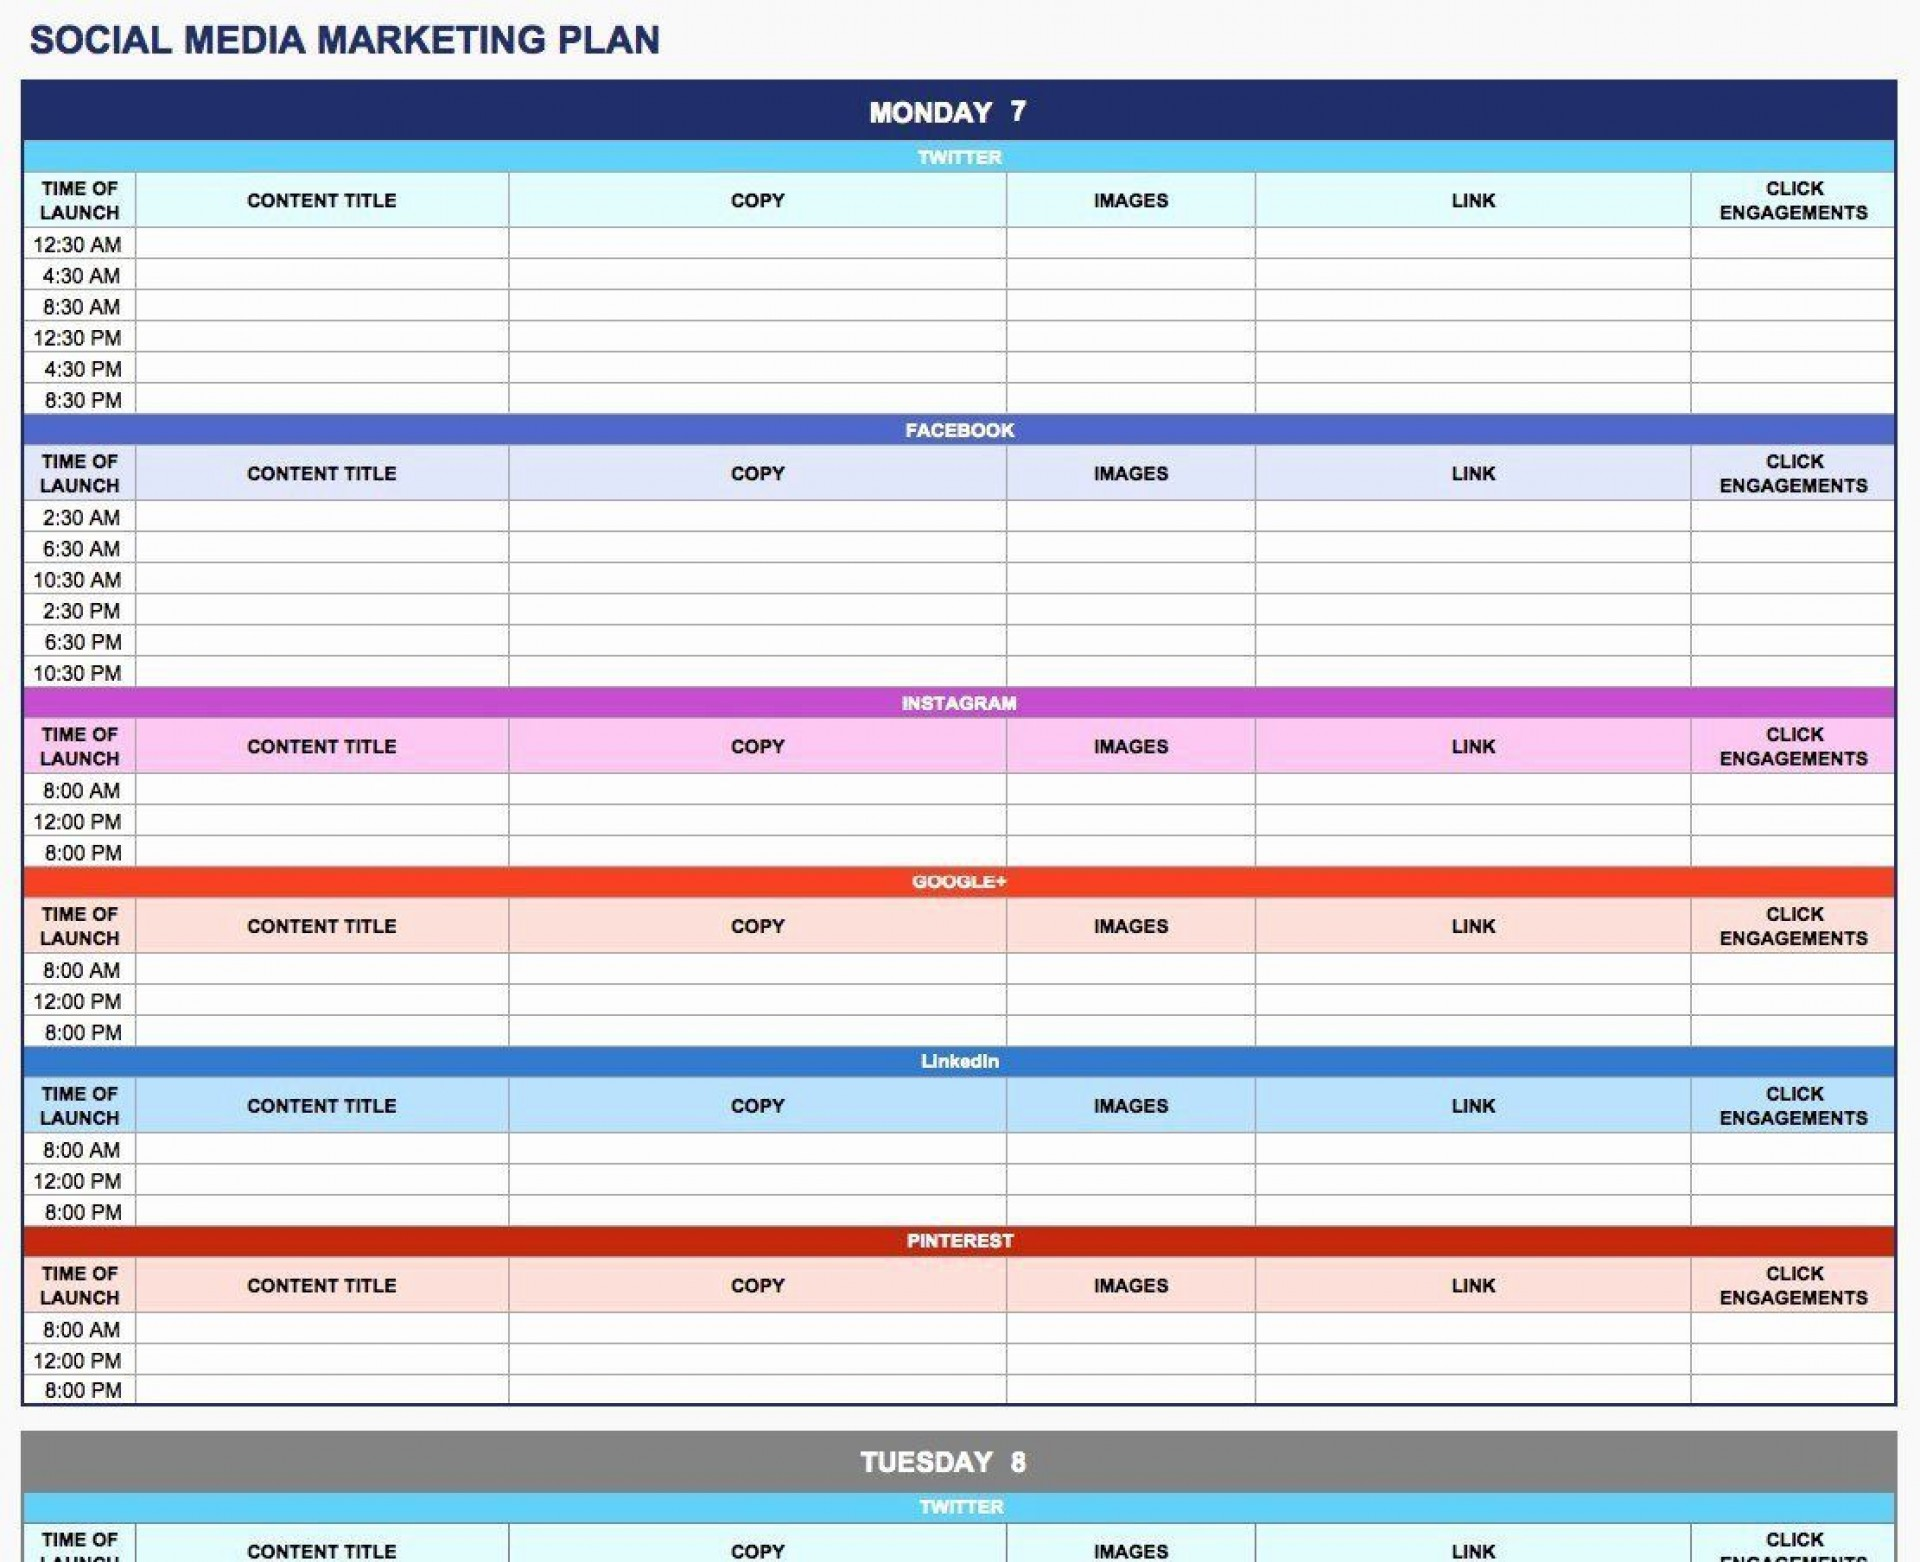 003 Rare Social Media Plan Template High Resolution  Free Download Ppt Marketing Excel1920